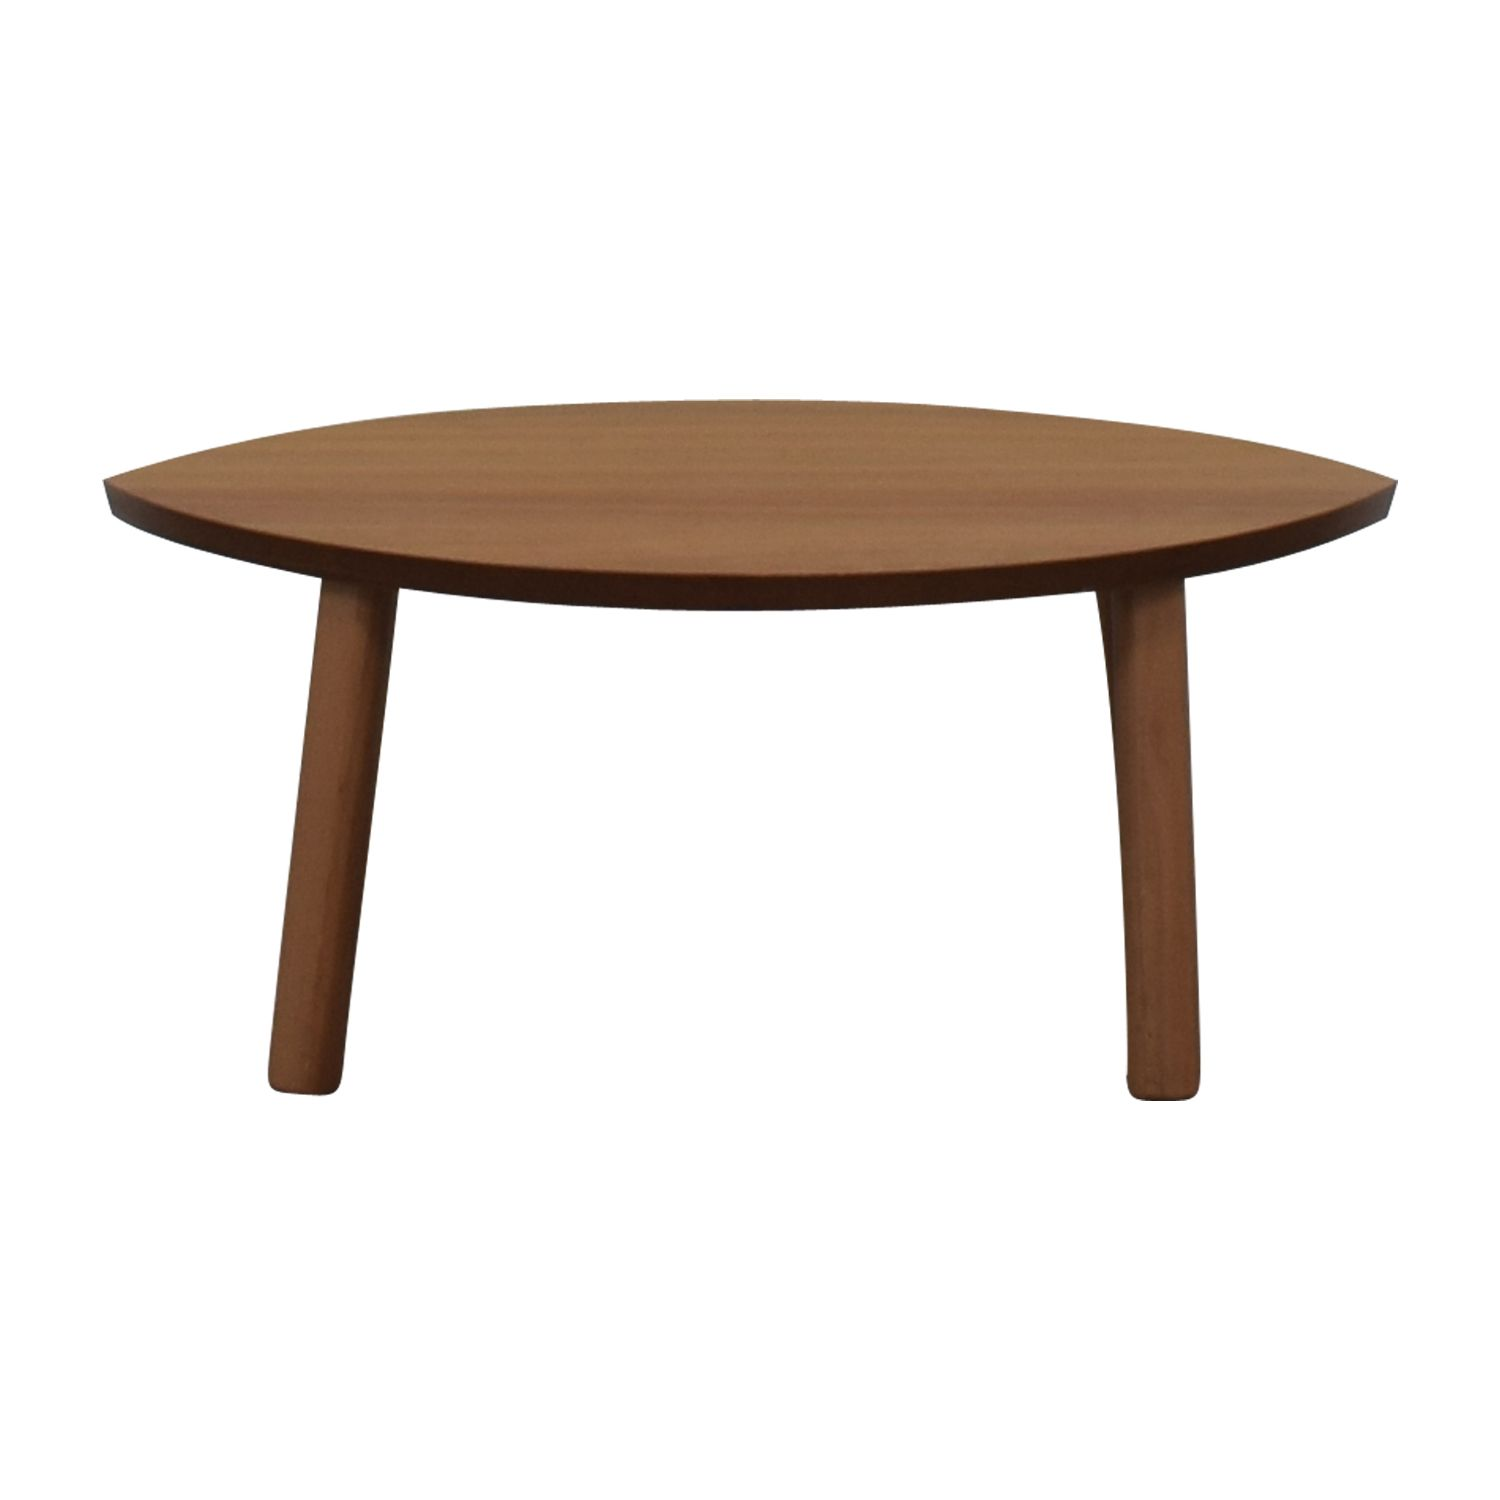 77 Off Ikea Ikea Stockholm Coffee Table Tables Coffee Table Living Room Coffee Table Ikea Stockholm [ 1500 x 1500 Pixel ]